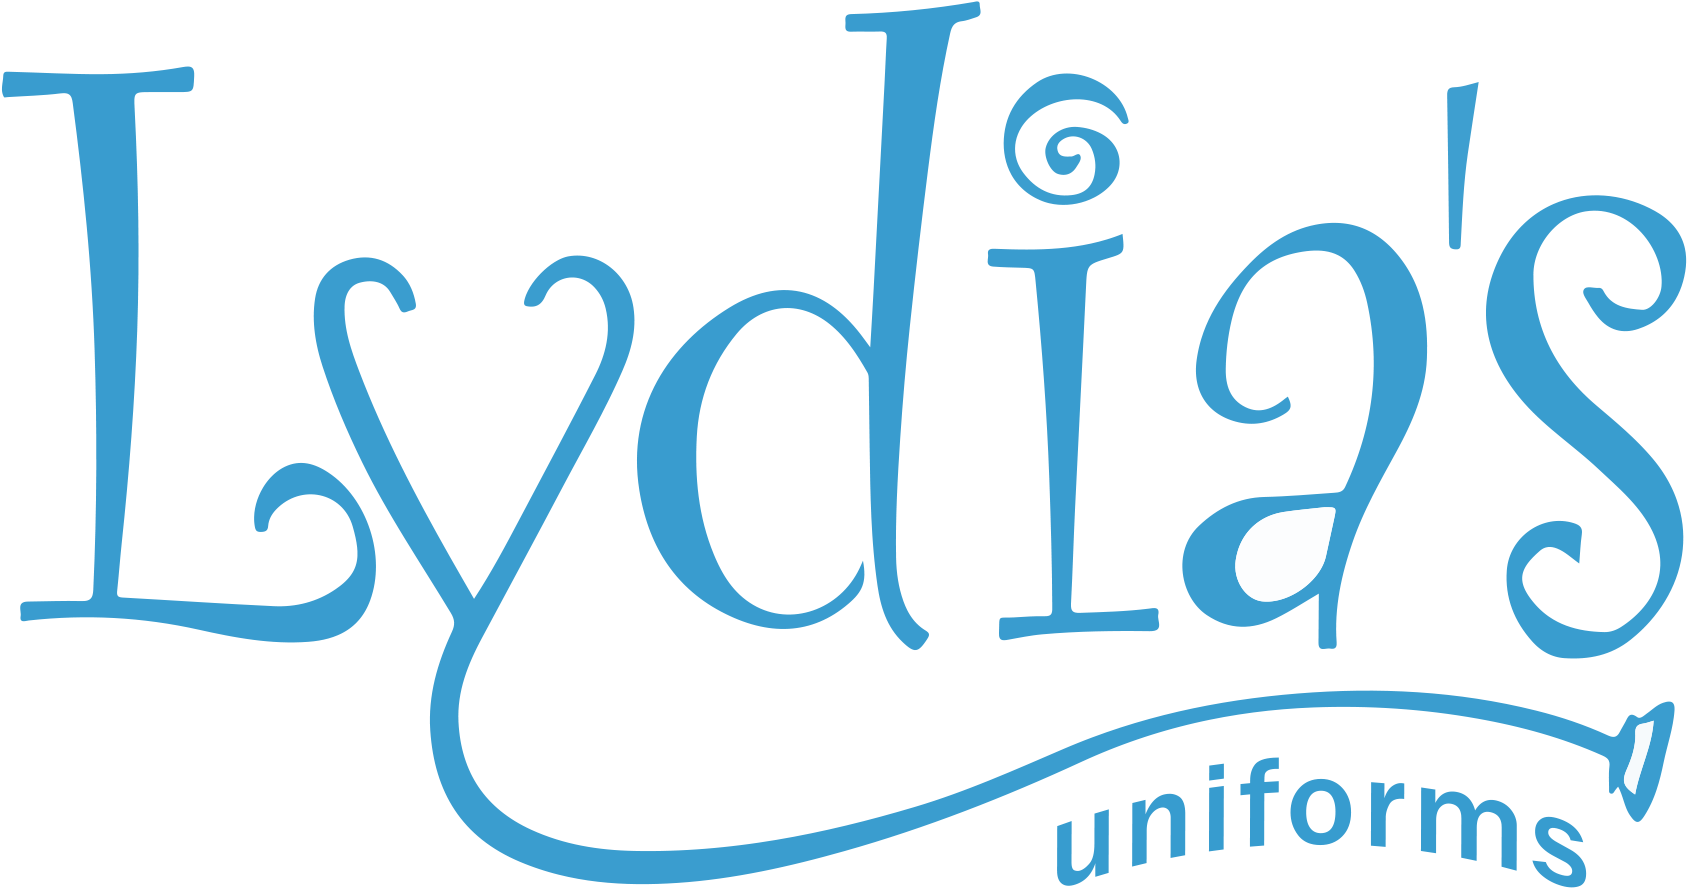 Frequently Asked Questions - Lydiasuniforms